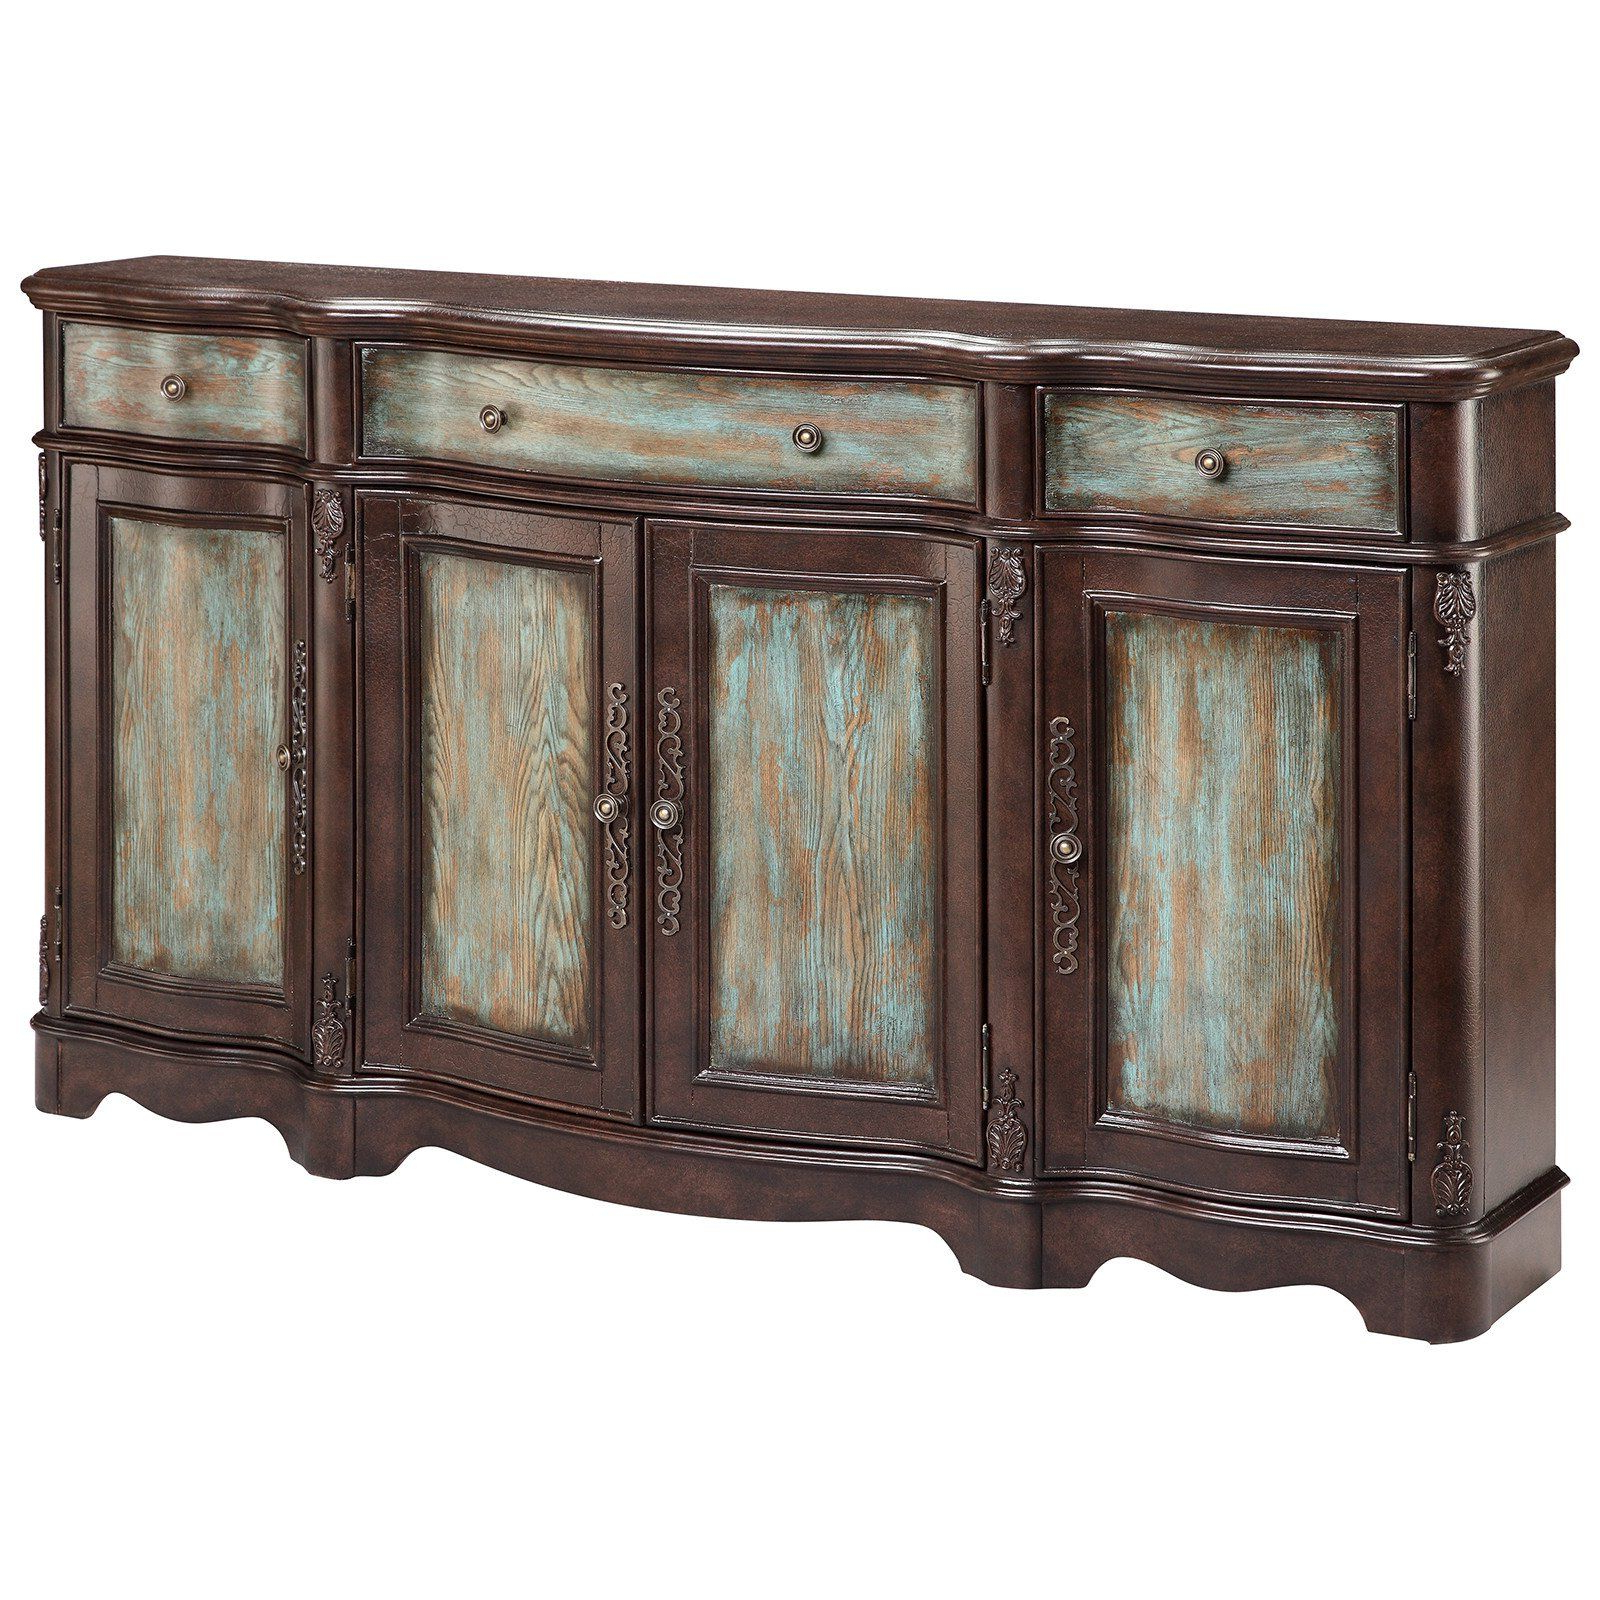 Lyle 4 Door Sideboard In Brown And Blue | Credenzas, Chests For Hewlett Sideboards (View 4 of 20)